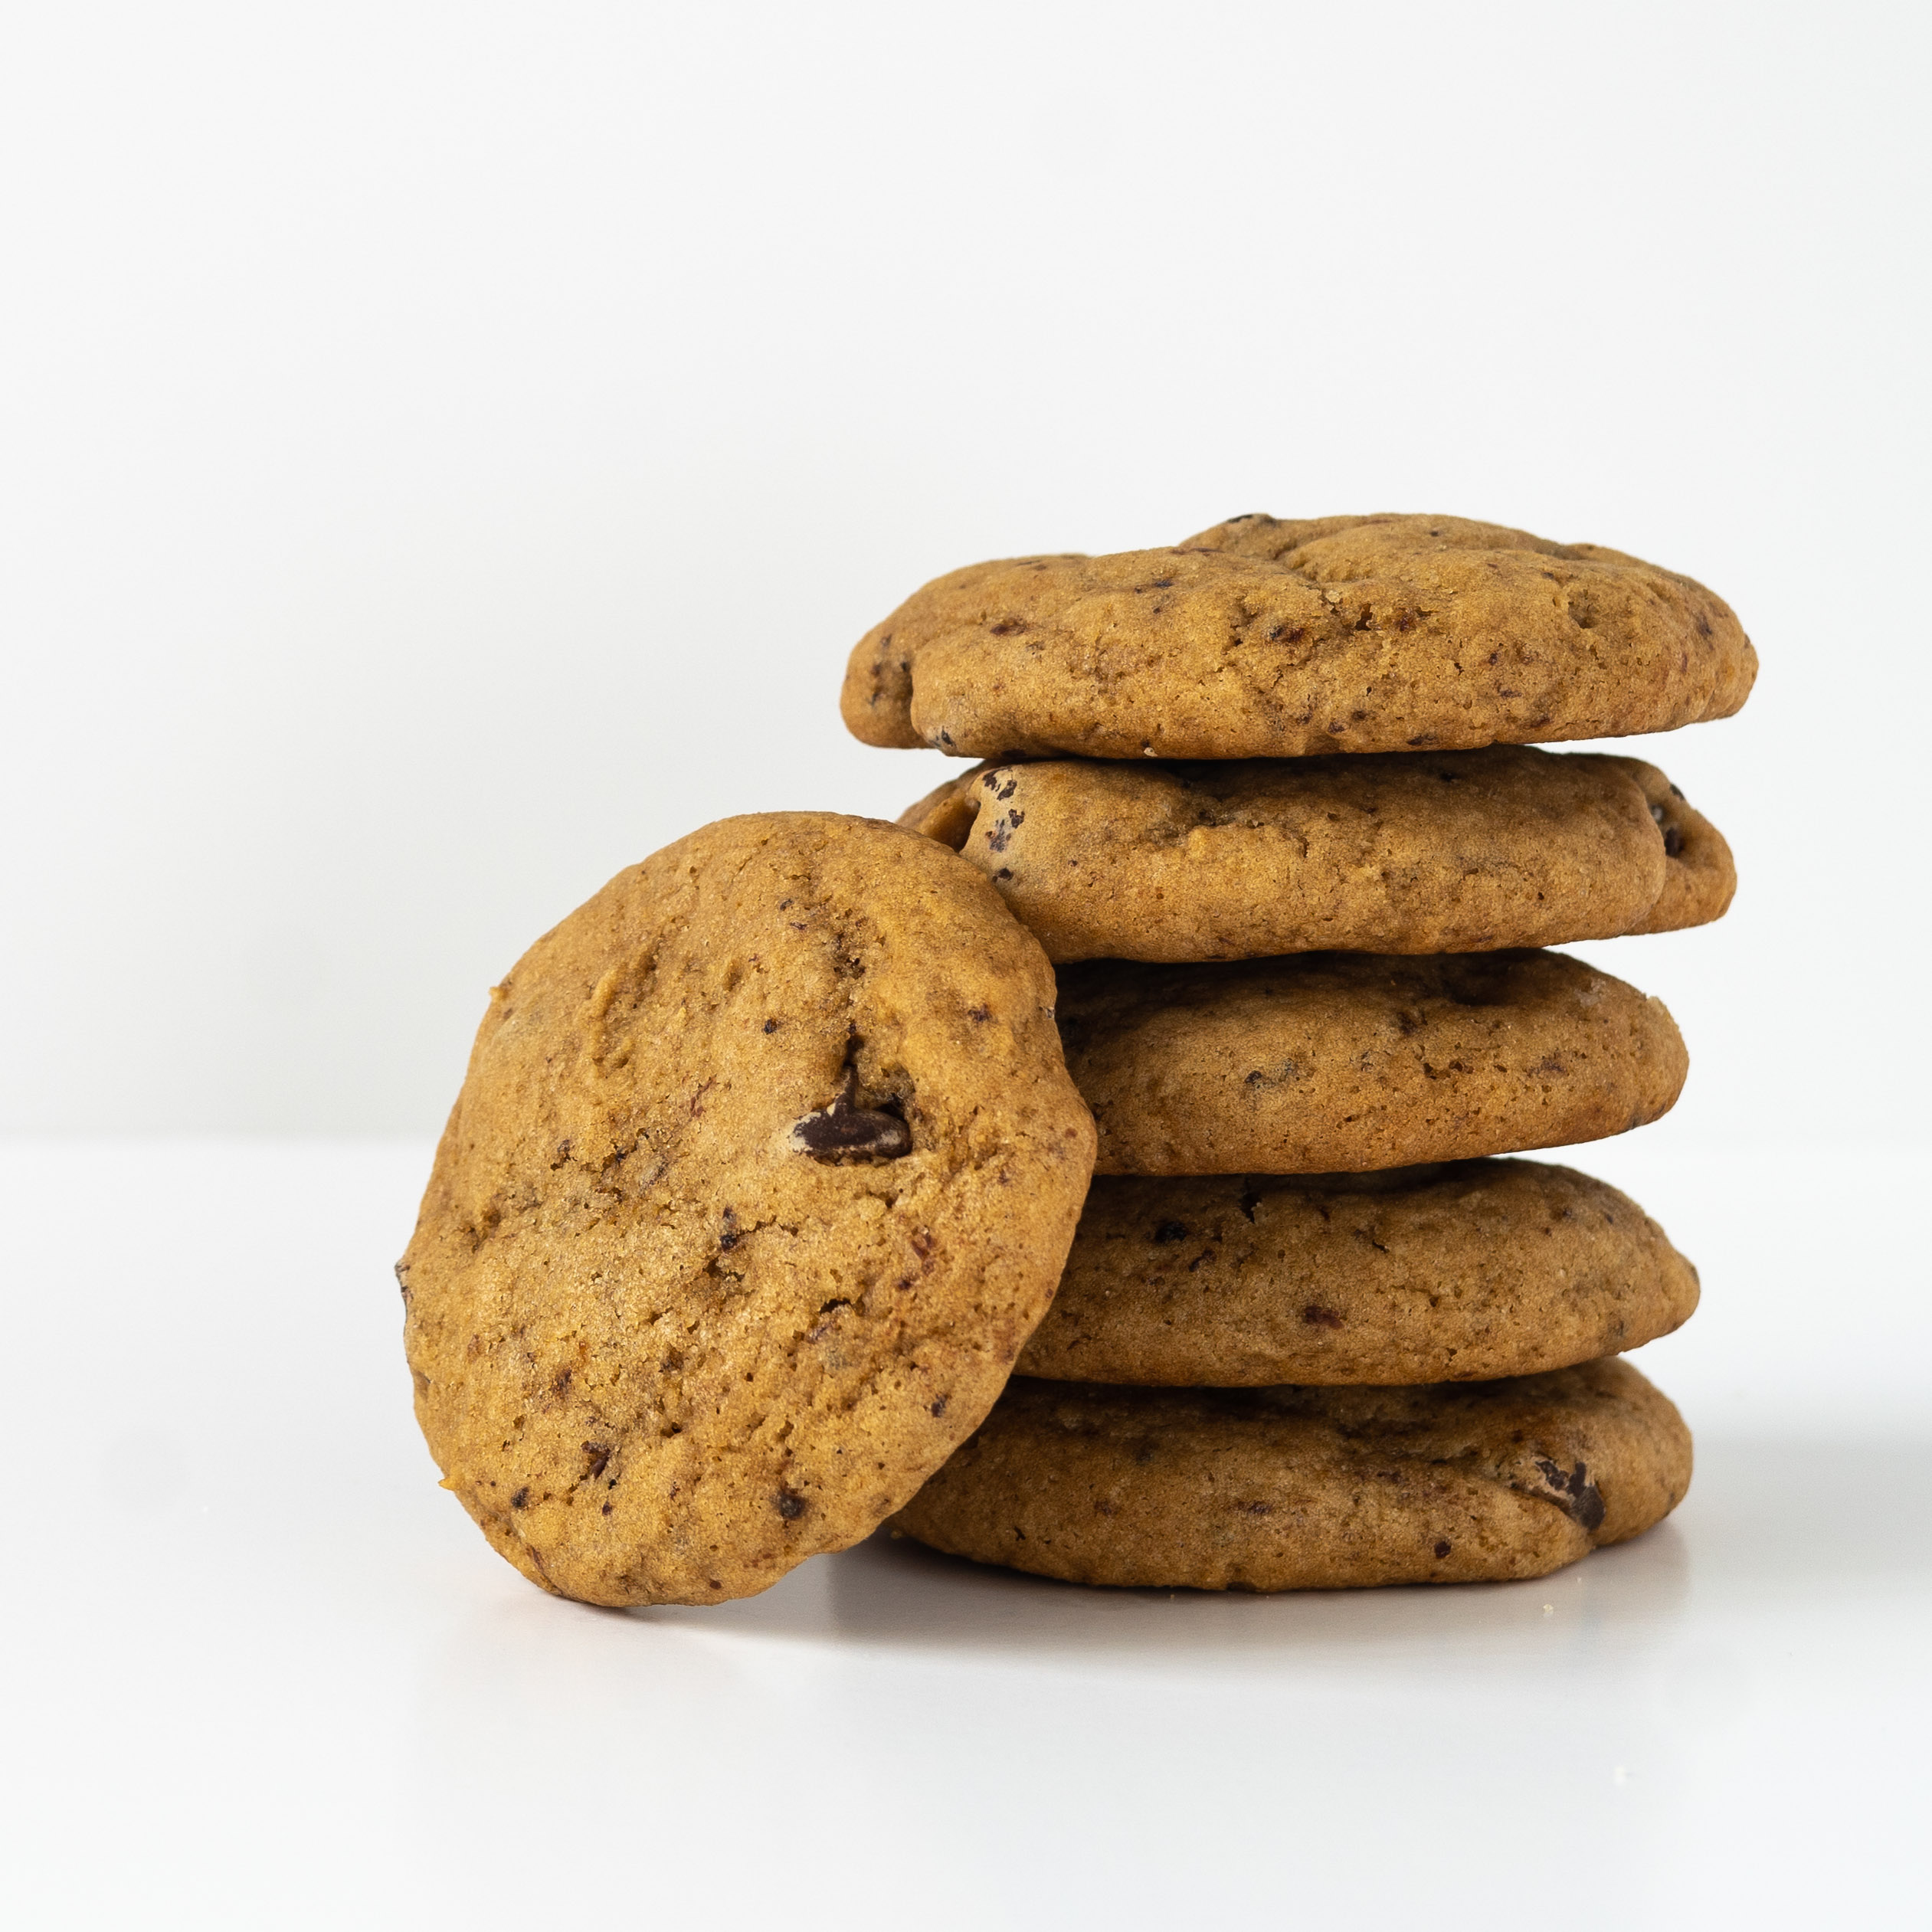 <p>These chocolate chip cookie tastes rich enough that omnivores won't notice the difference. The key to the addictive, chewy texture is a small amount of Dried Plum Puree, which helps bind moisture in the cookie and add sweetness with less sugar and fat as other chocolate chip cookie recipes. Before baking, refrigerate at least 4 […]</p>